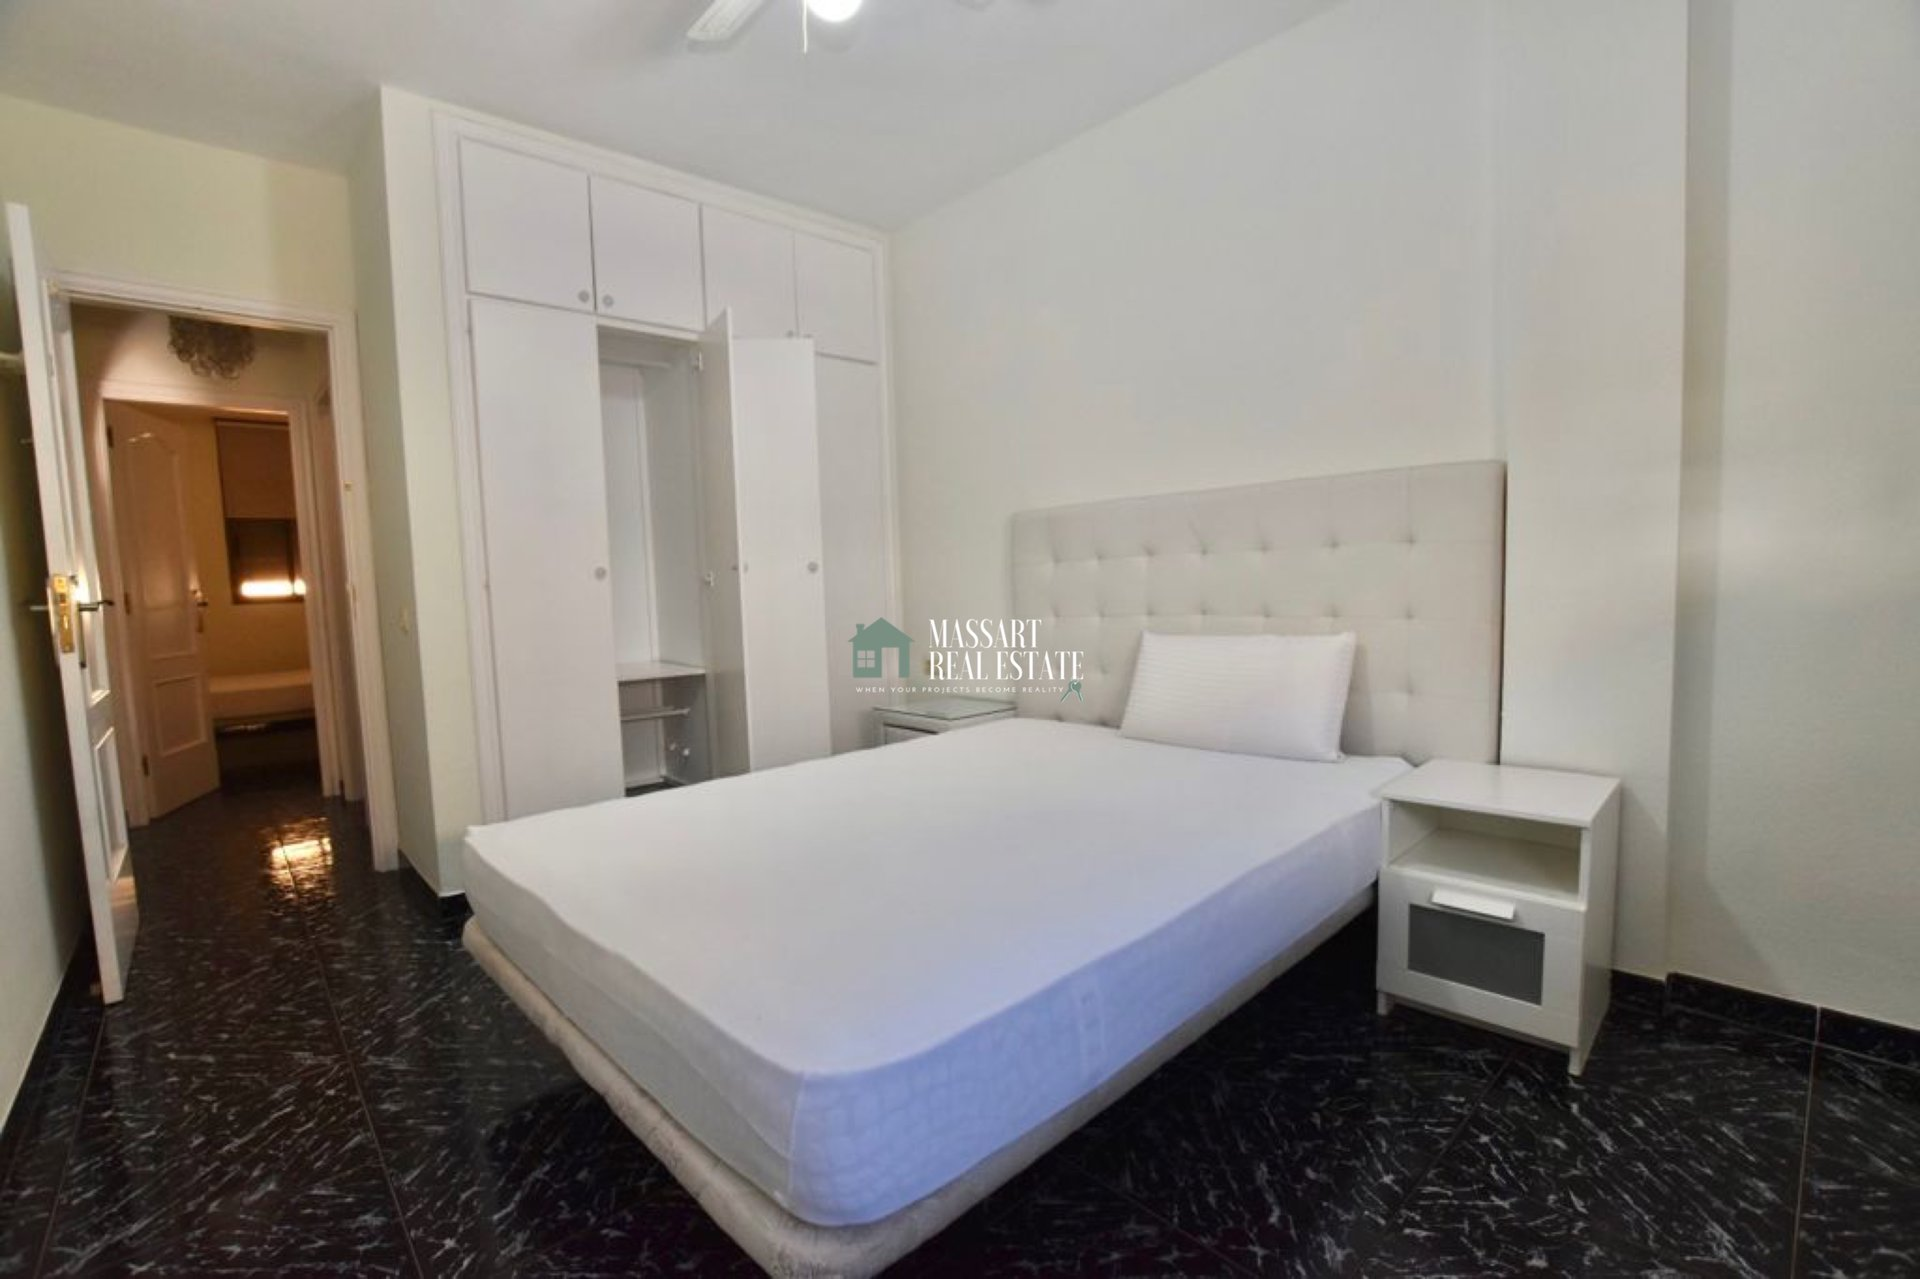 Fully furnished apartment in the beautiful coastal town of El Médano ... very close to the beach ... just 3 minutes walk!